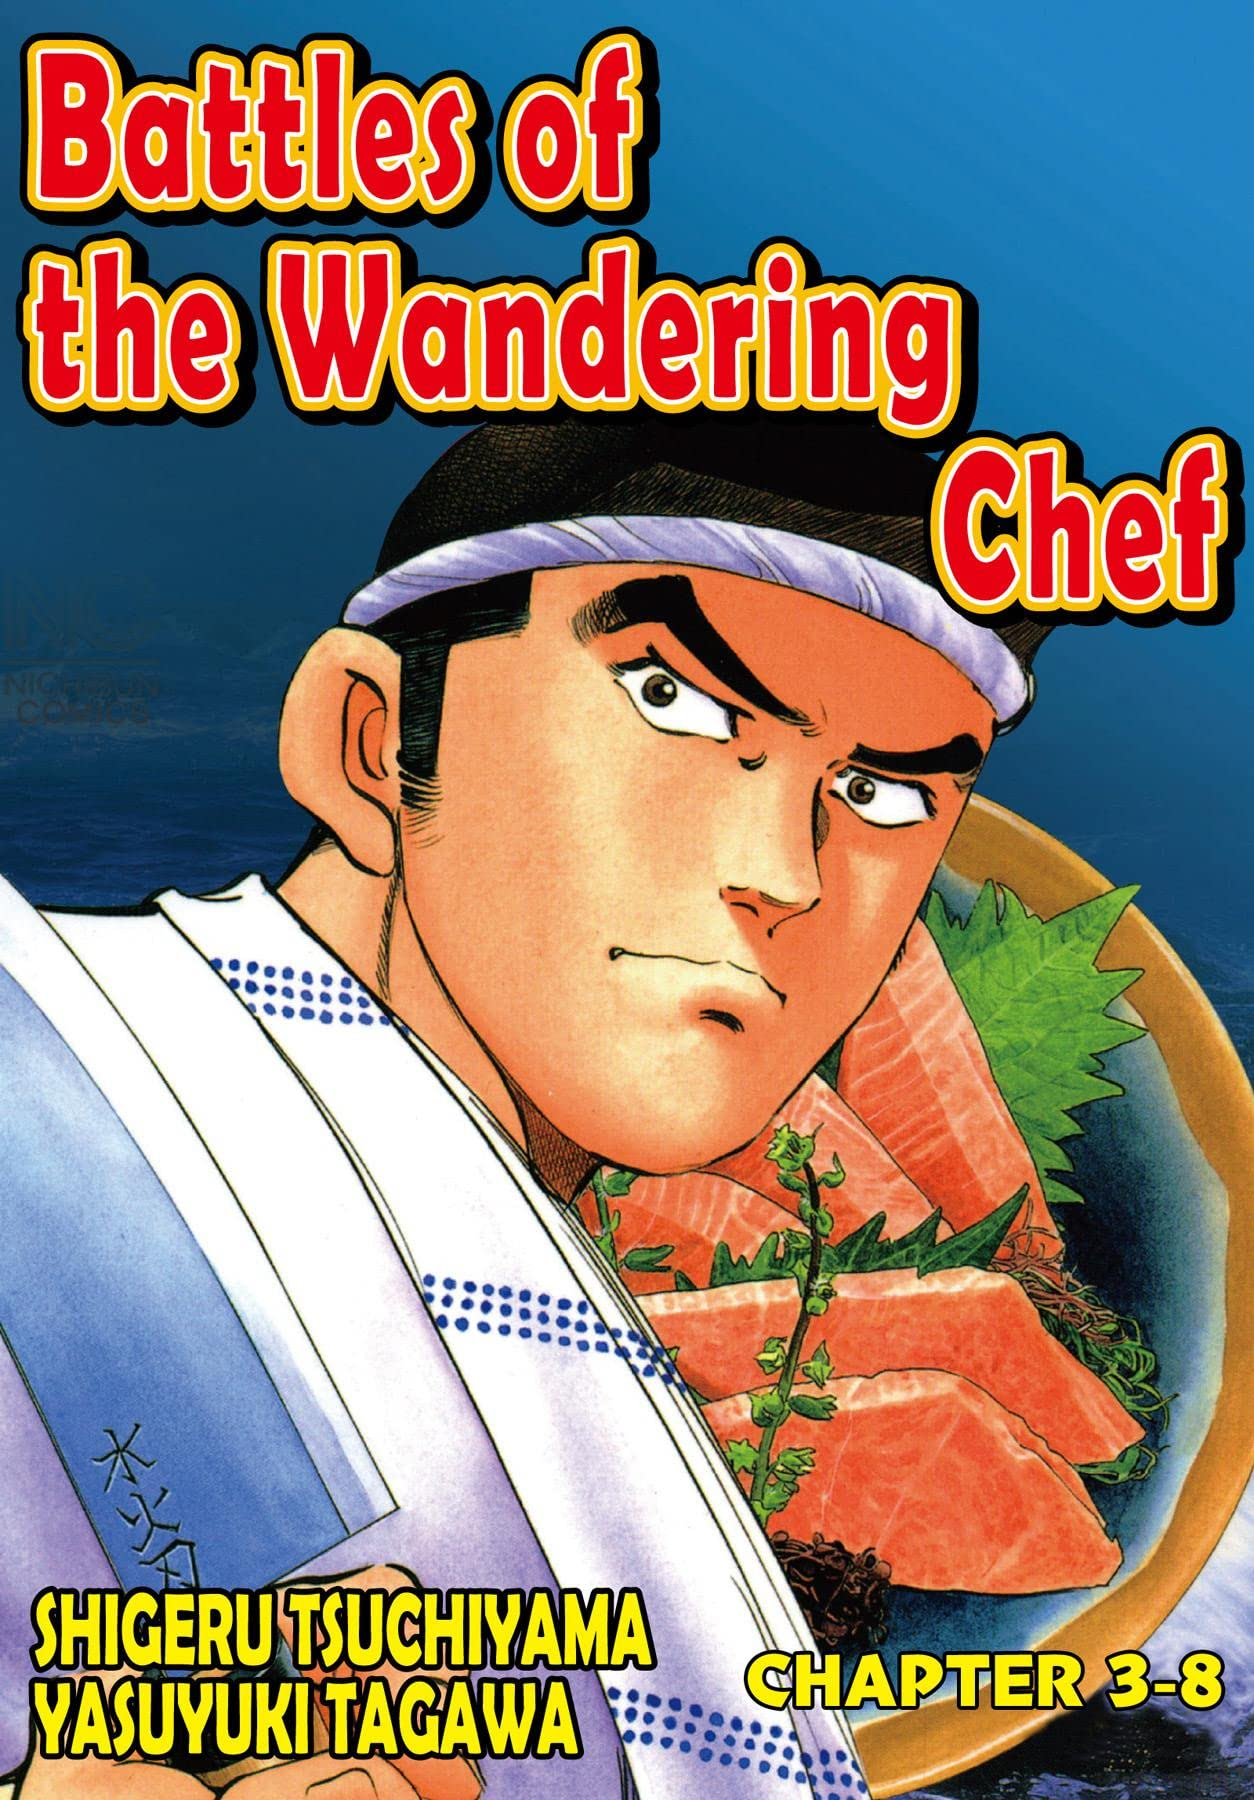 BATTLES OF THE WANDERING CHEF #23